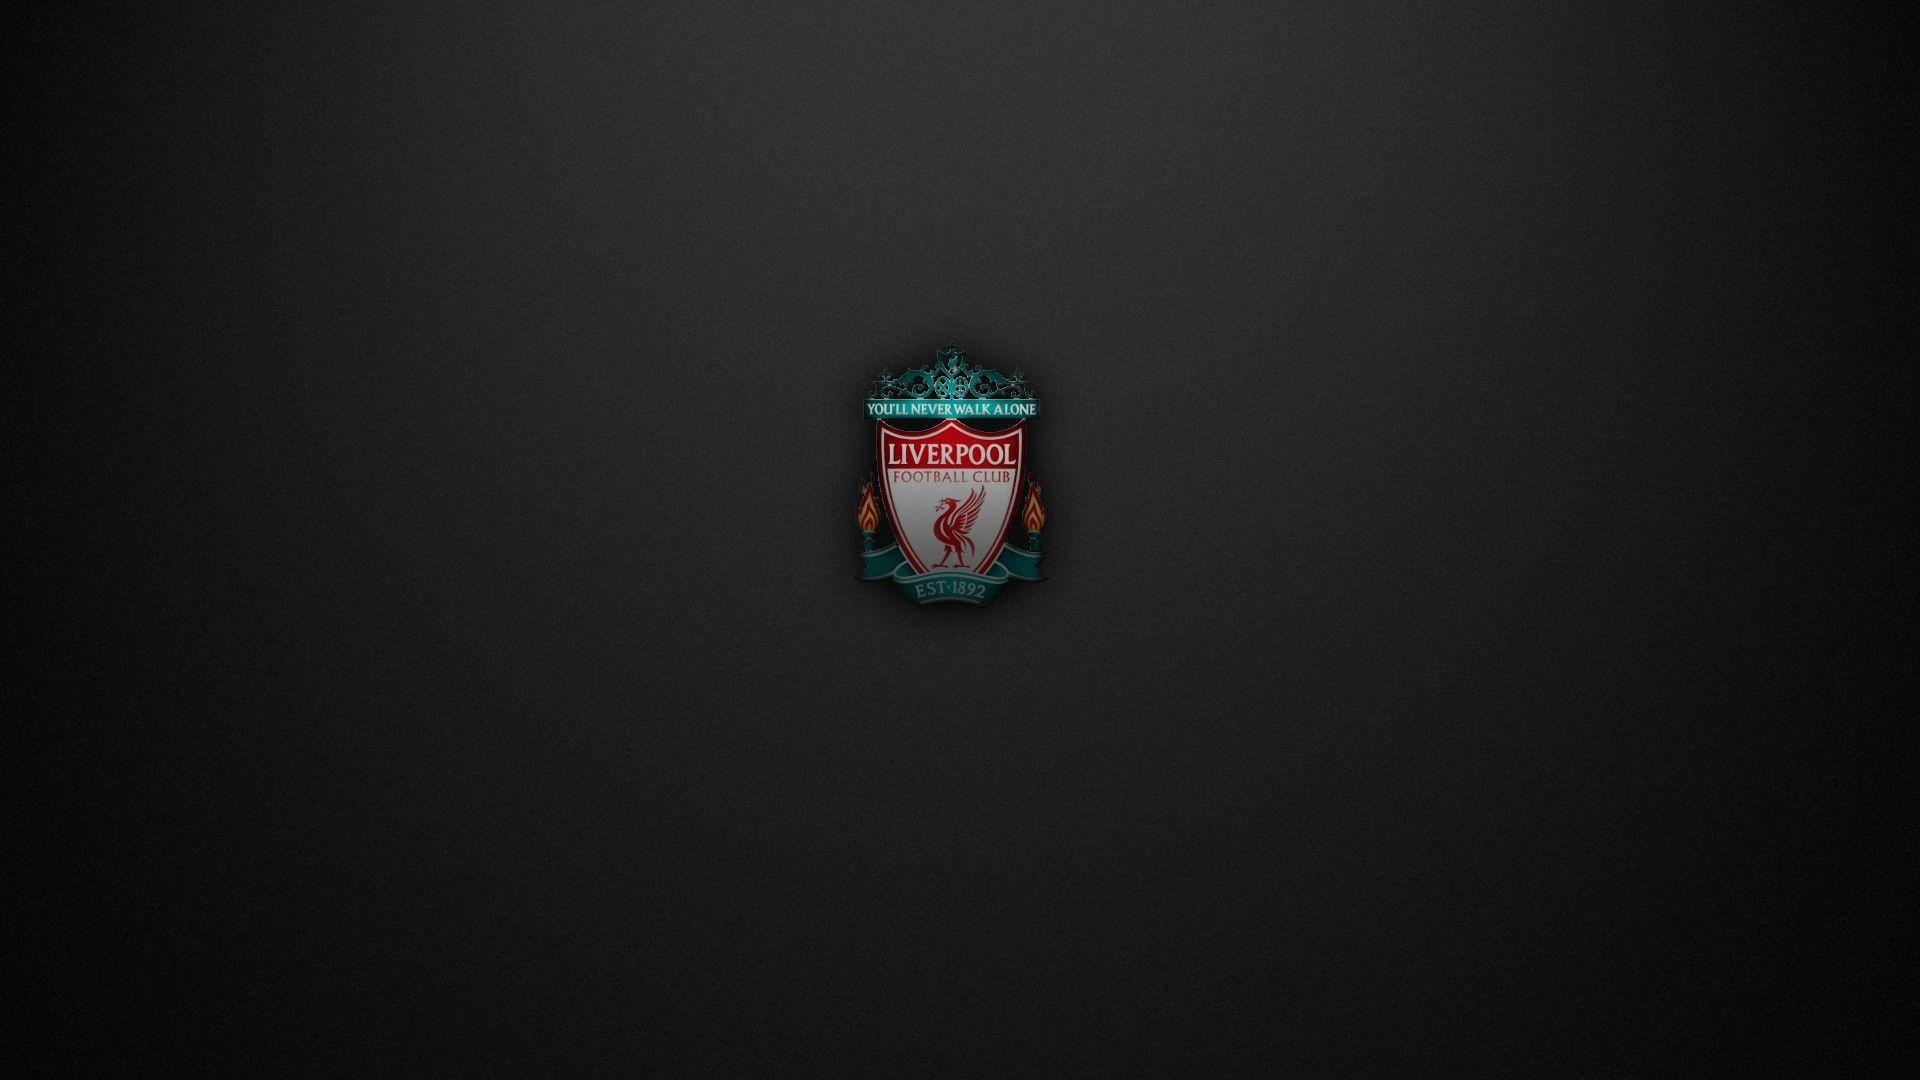 Liverpool FC Wallpaper - Wide wallpapers - Widewallpapers.